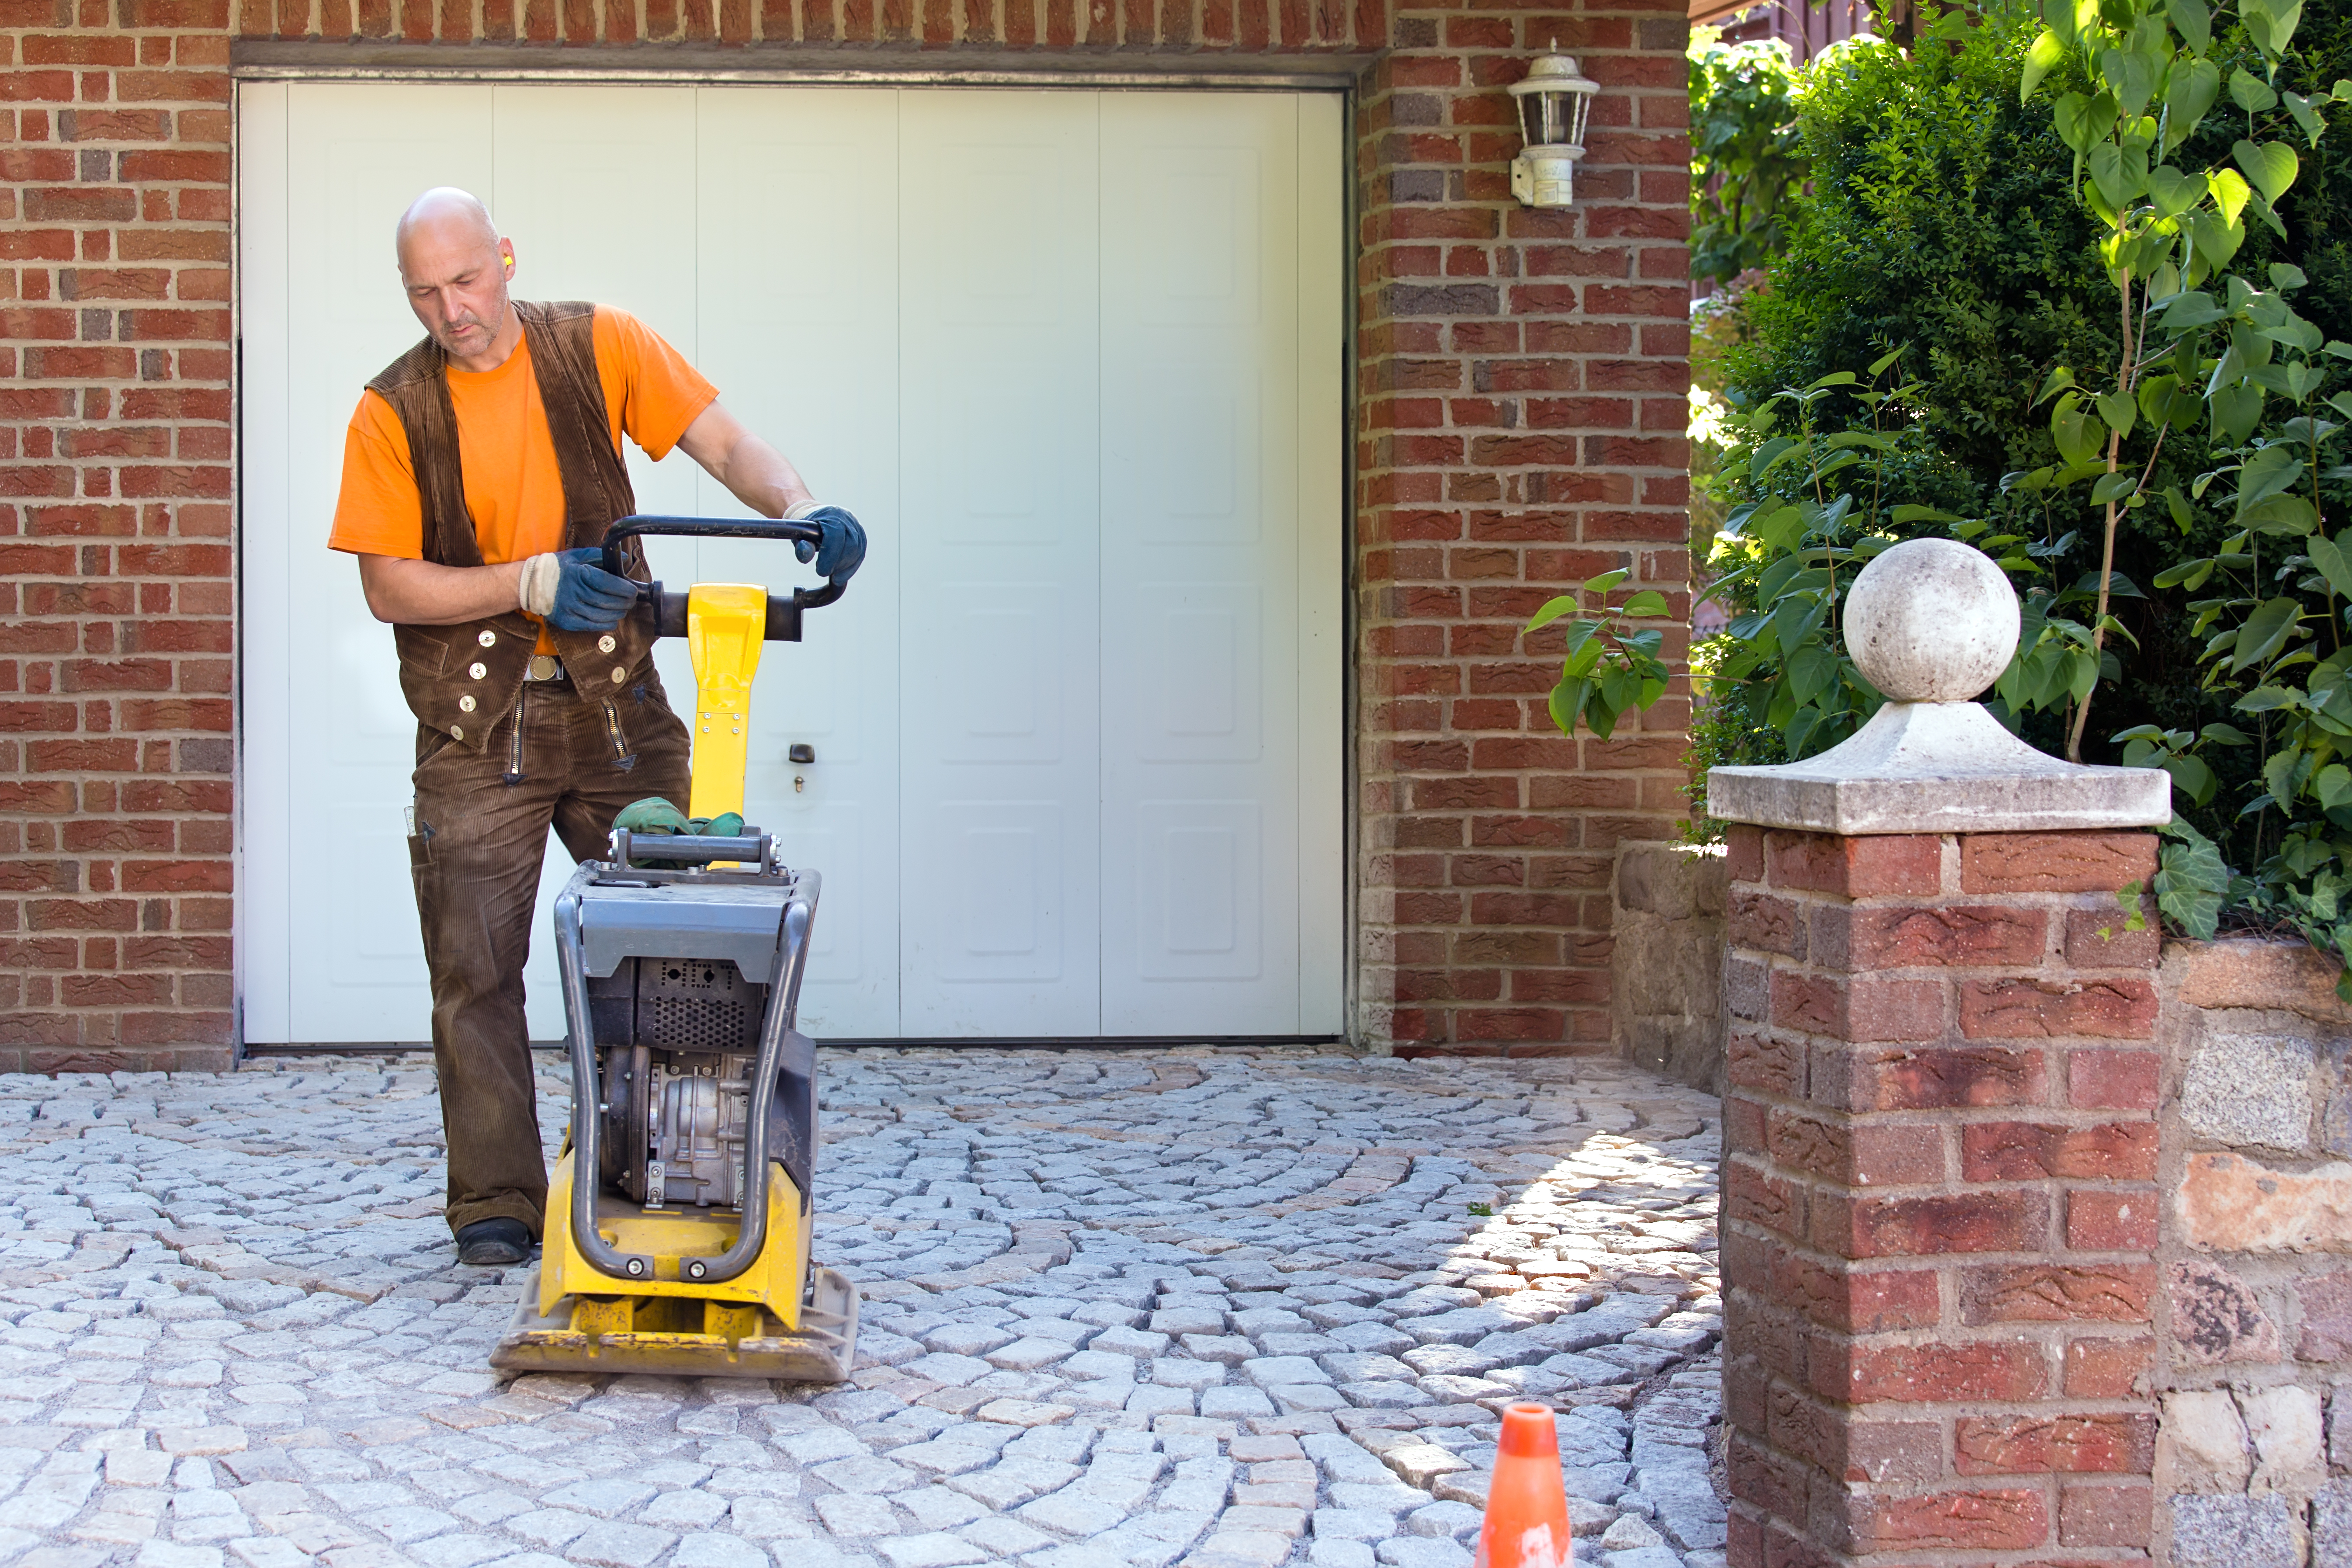 Cementing Pavers in Place | Home Guides | SF Gate